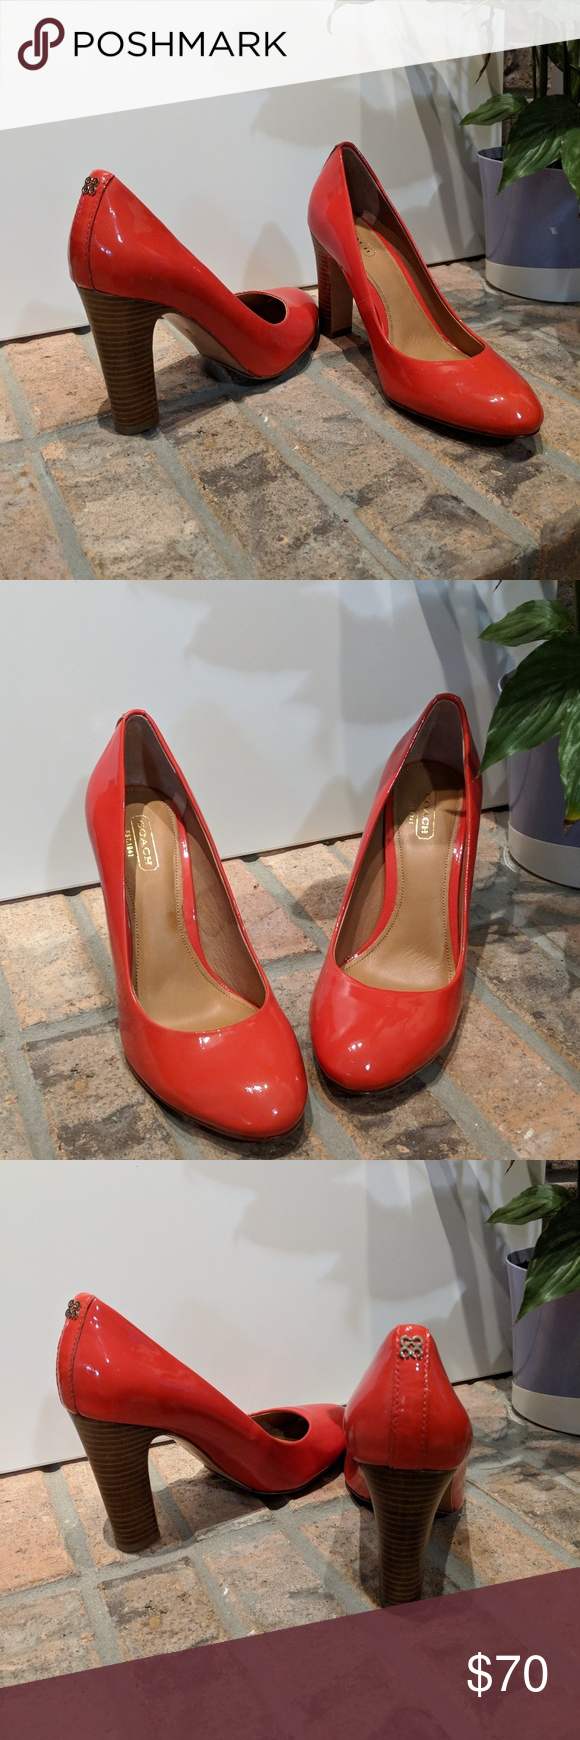 2d3131286bc Coach coral pumps Never worn Coach coral patent leather pumps with 4 ...